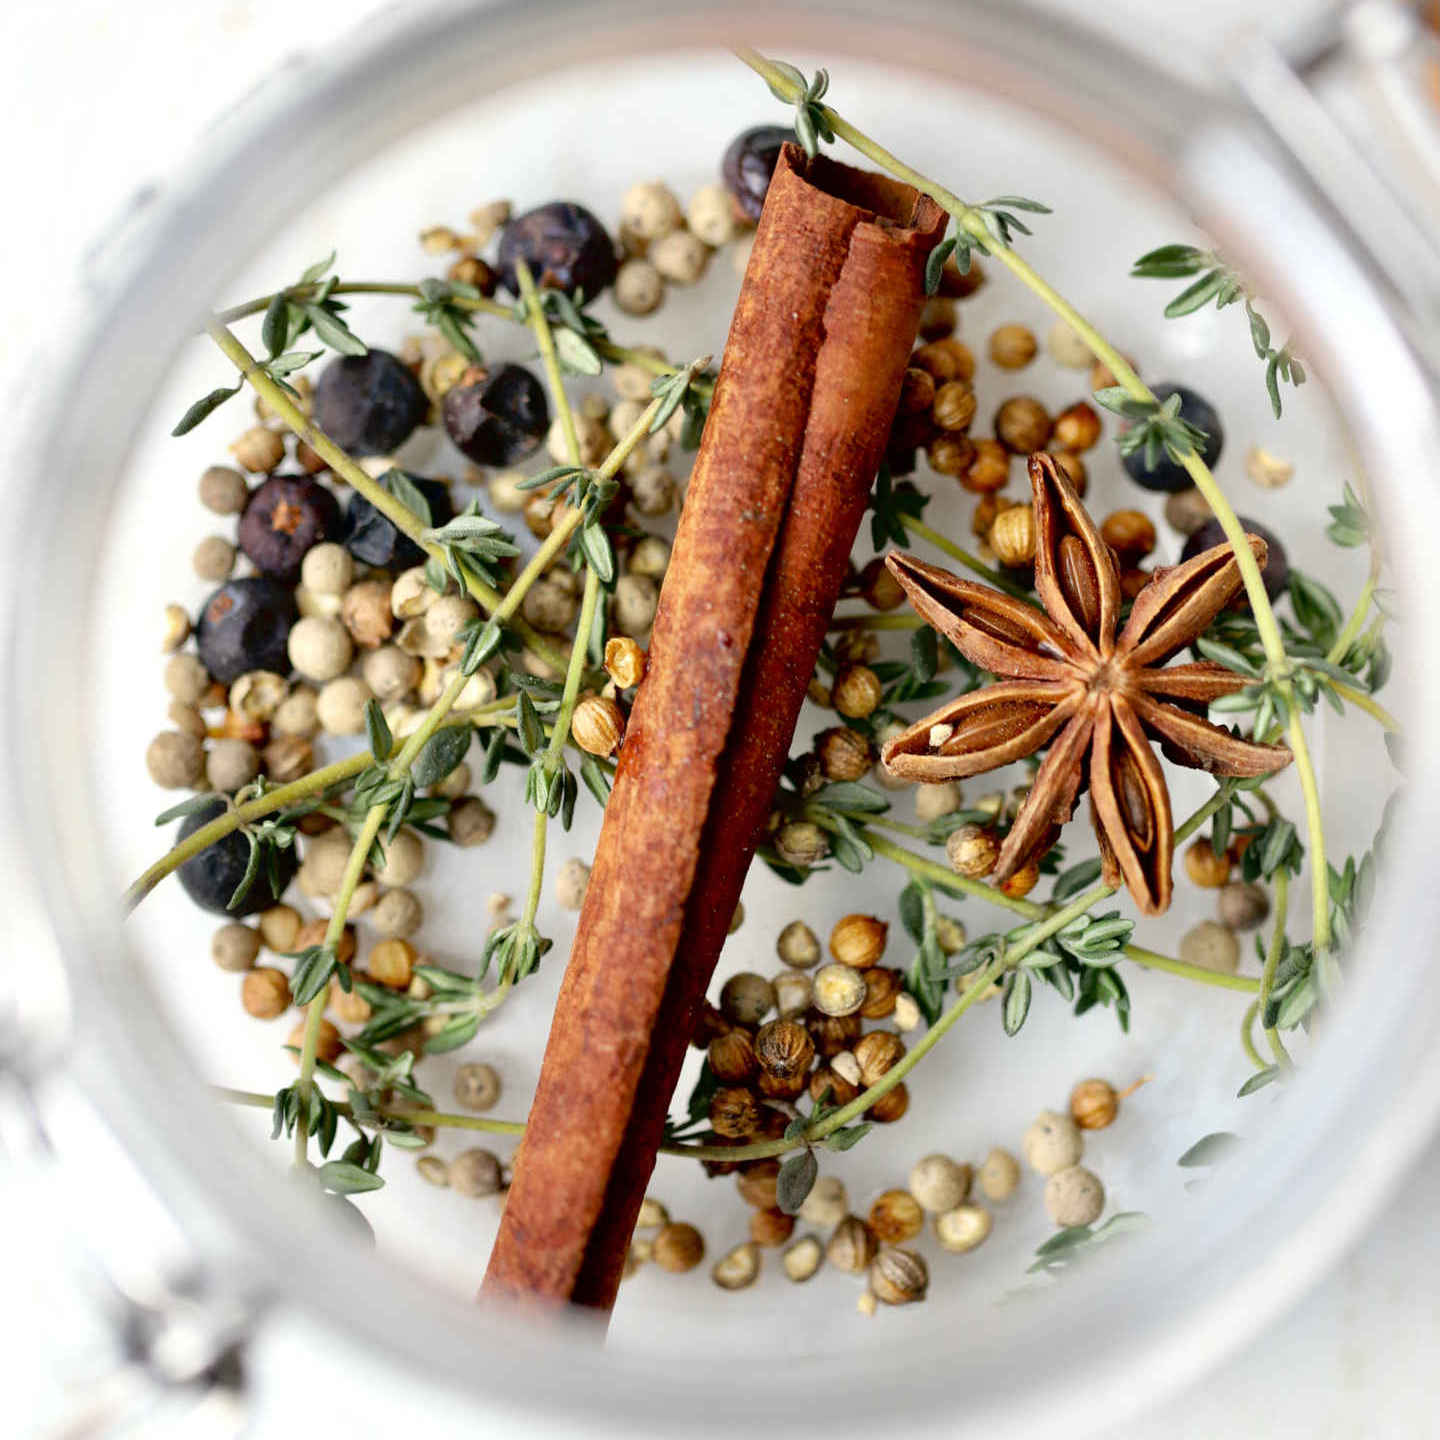 herbs and spices for the pickling brine: thyme, cinnamon stick, star anise, juniper berries, coriander seeds, white peppercorns